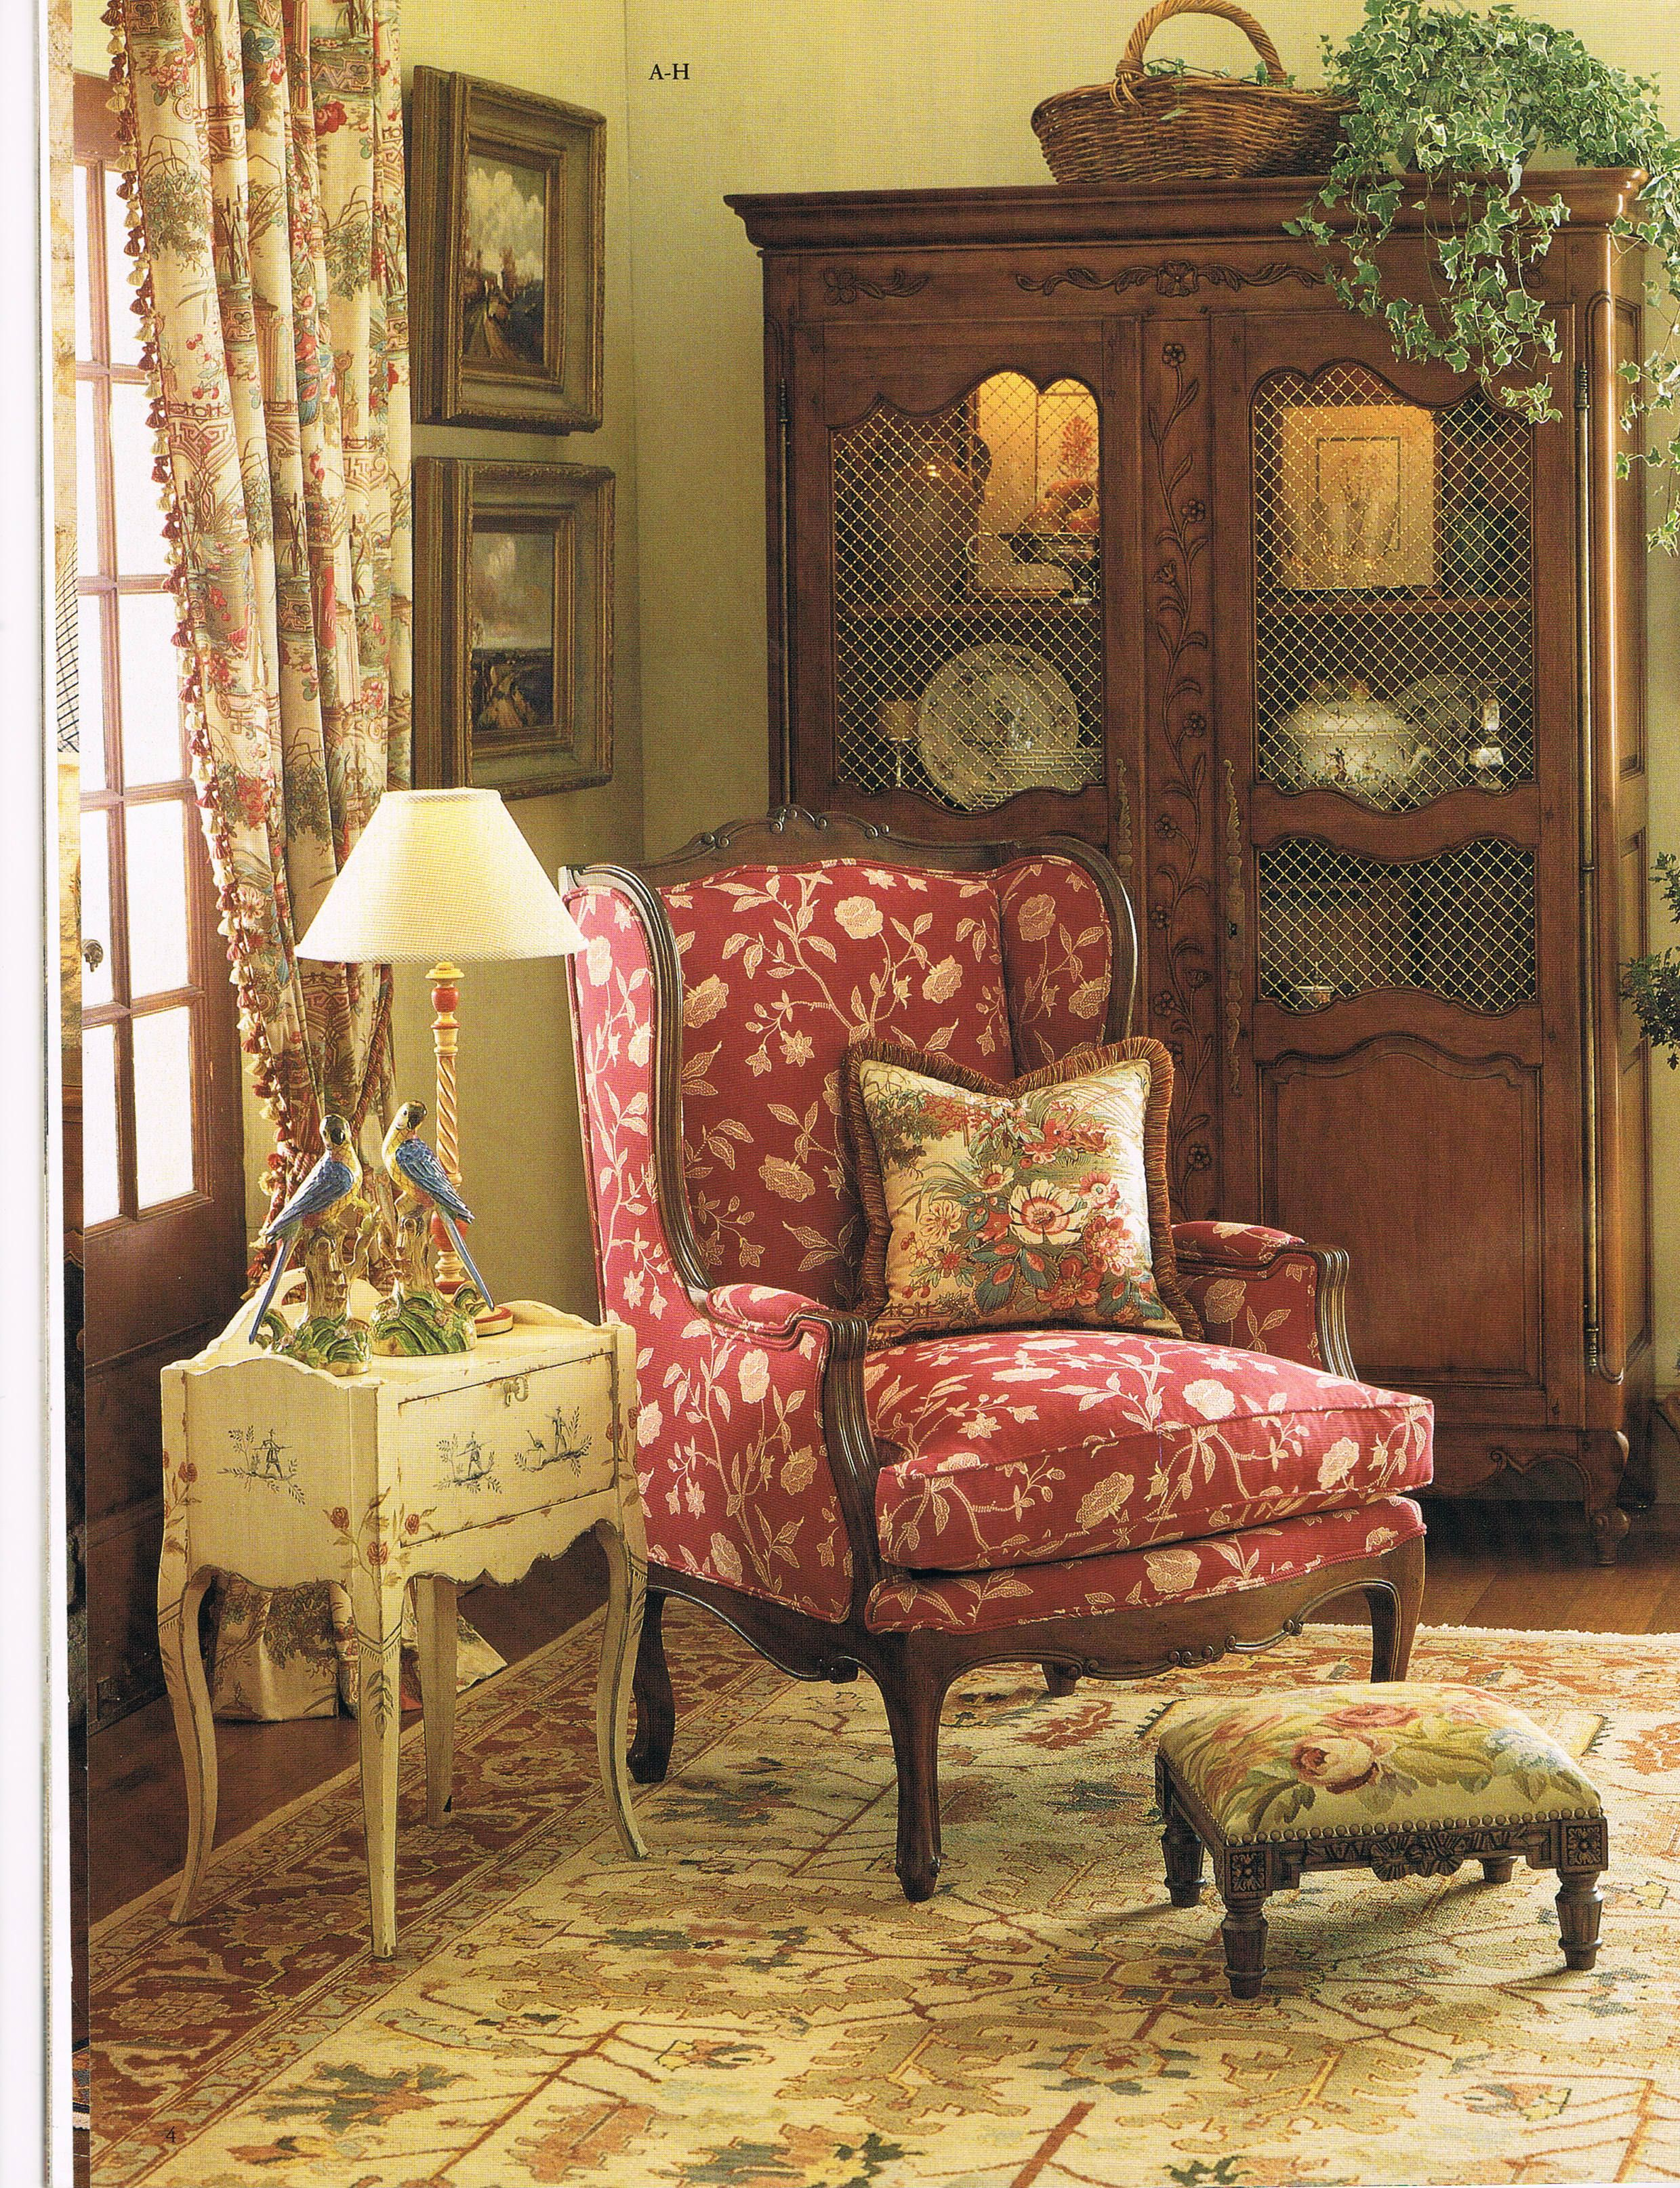 French Country By Pierre Deux   The Red Chair Is A Pop Of Color In A  Neutral Toned Room.